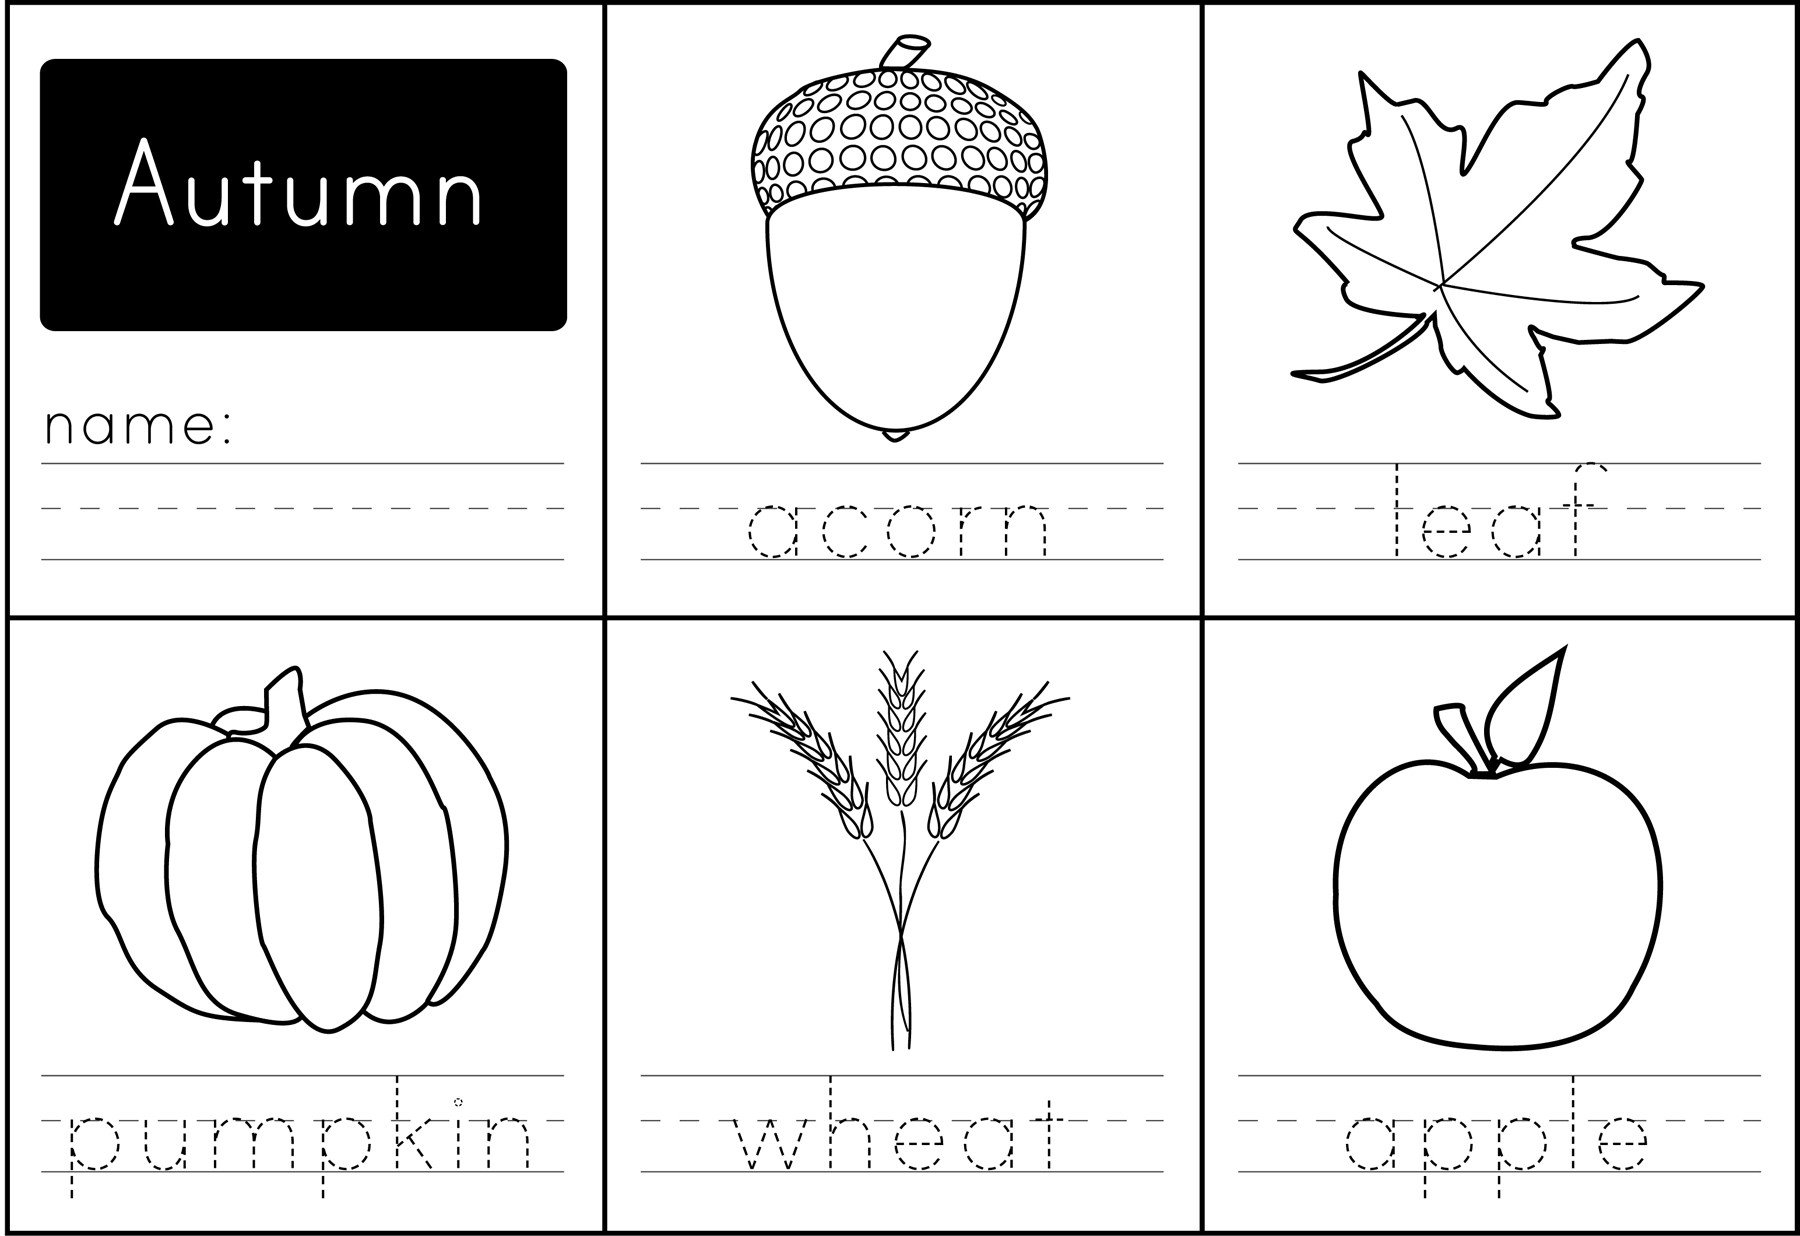 Fall Worksheets for Kindergarten Autumn Words Printable Image Cropped Coloring Sheet Fall